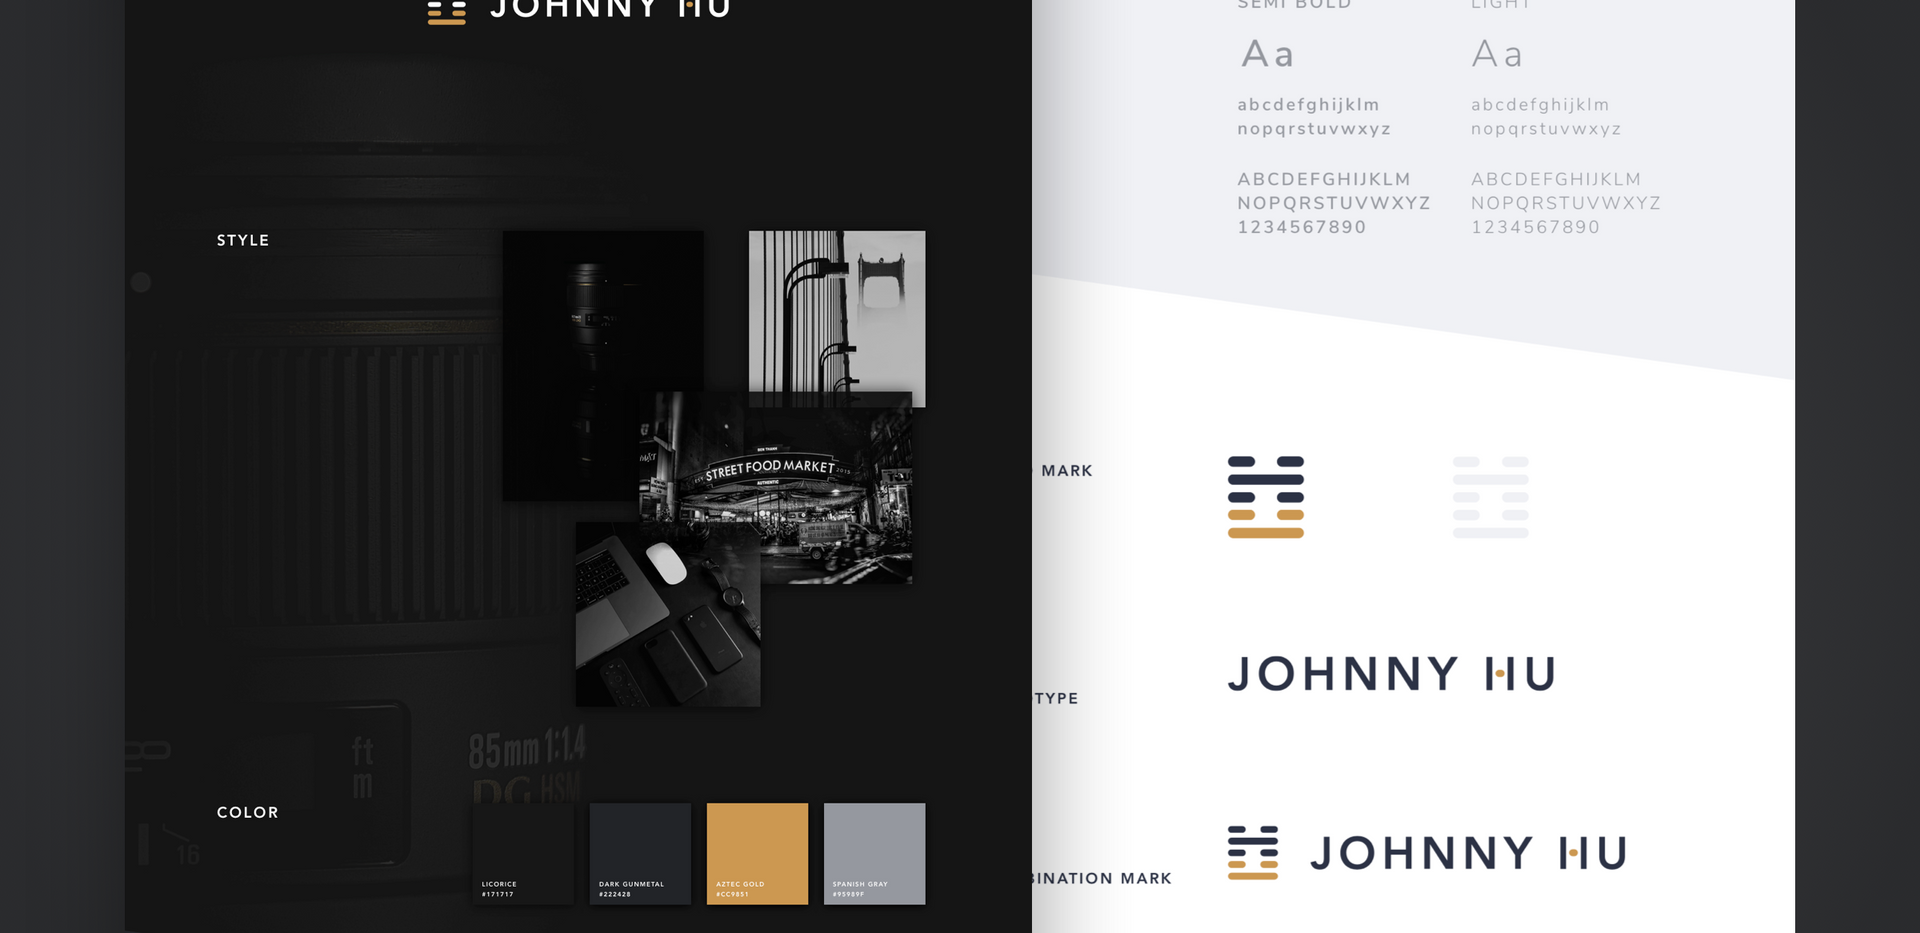 Johnny Hu Branding Project